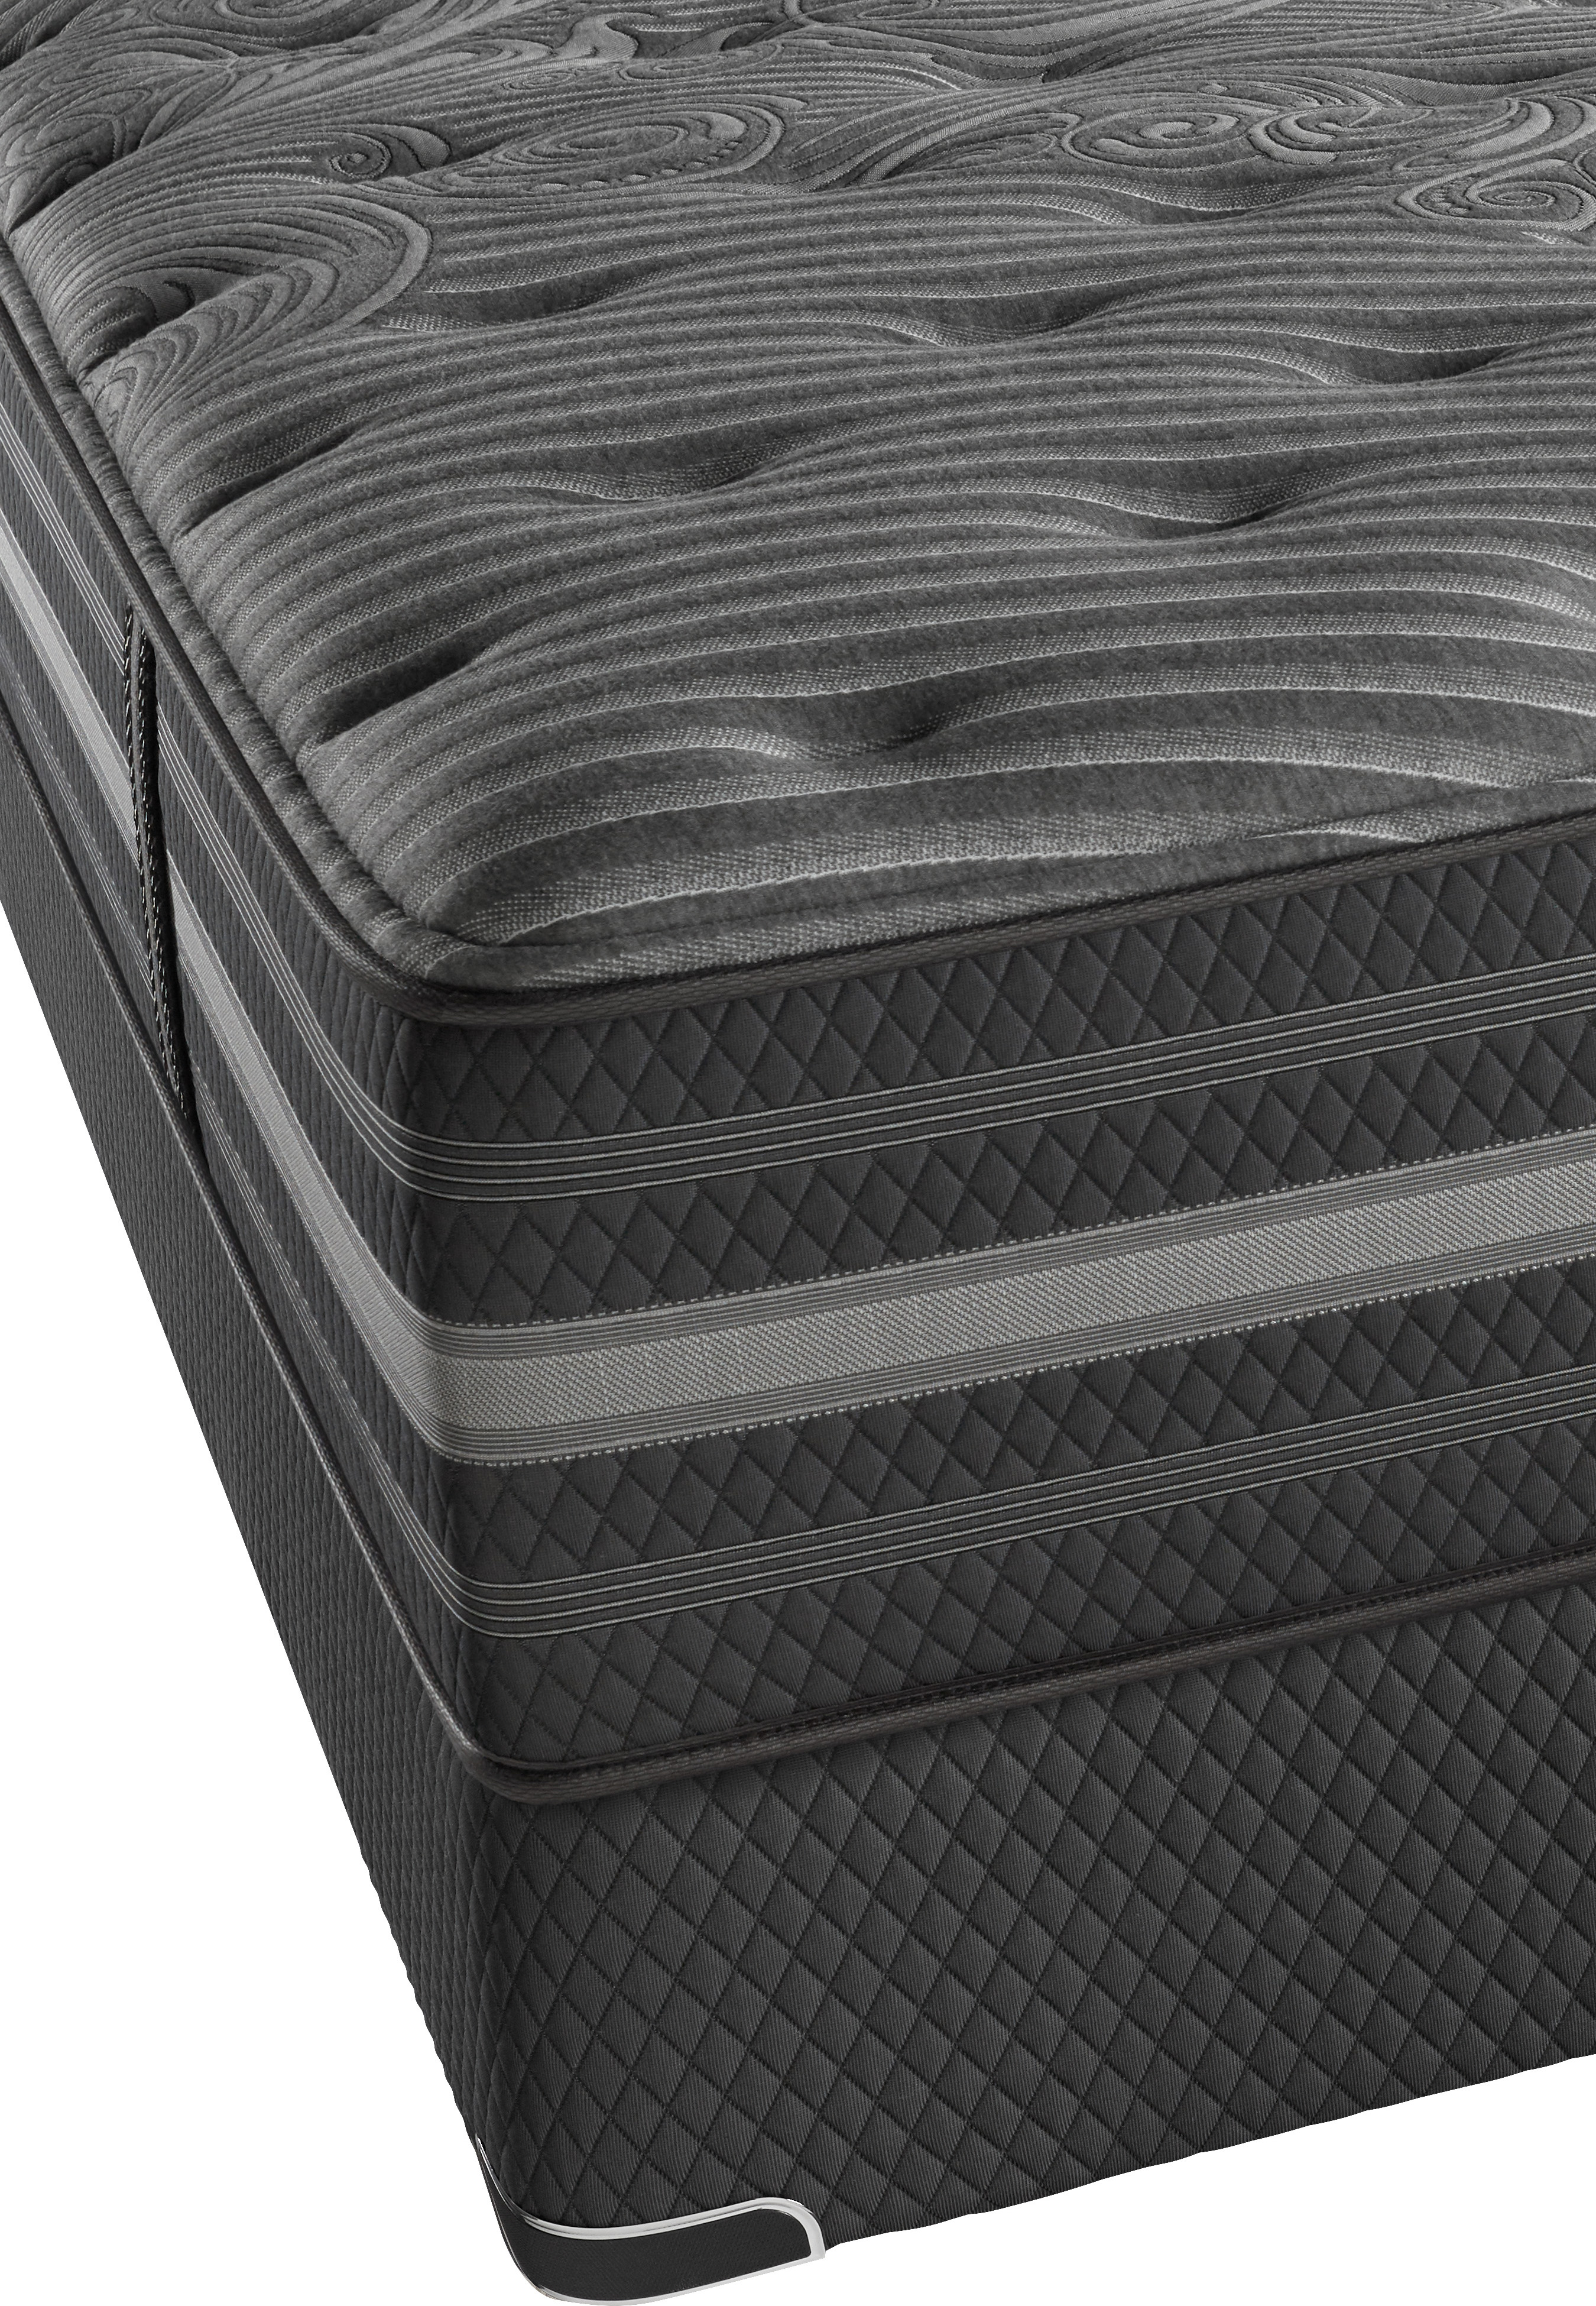 Beautyrest Black King Size Beautyrest Black Mariela Luxury Firm King Mattress